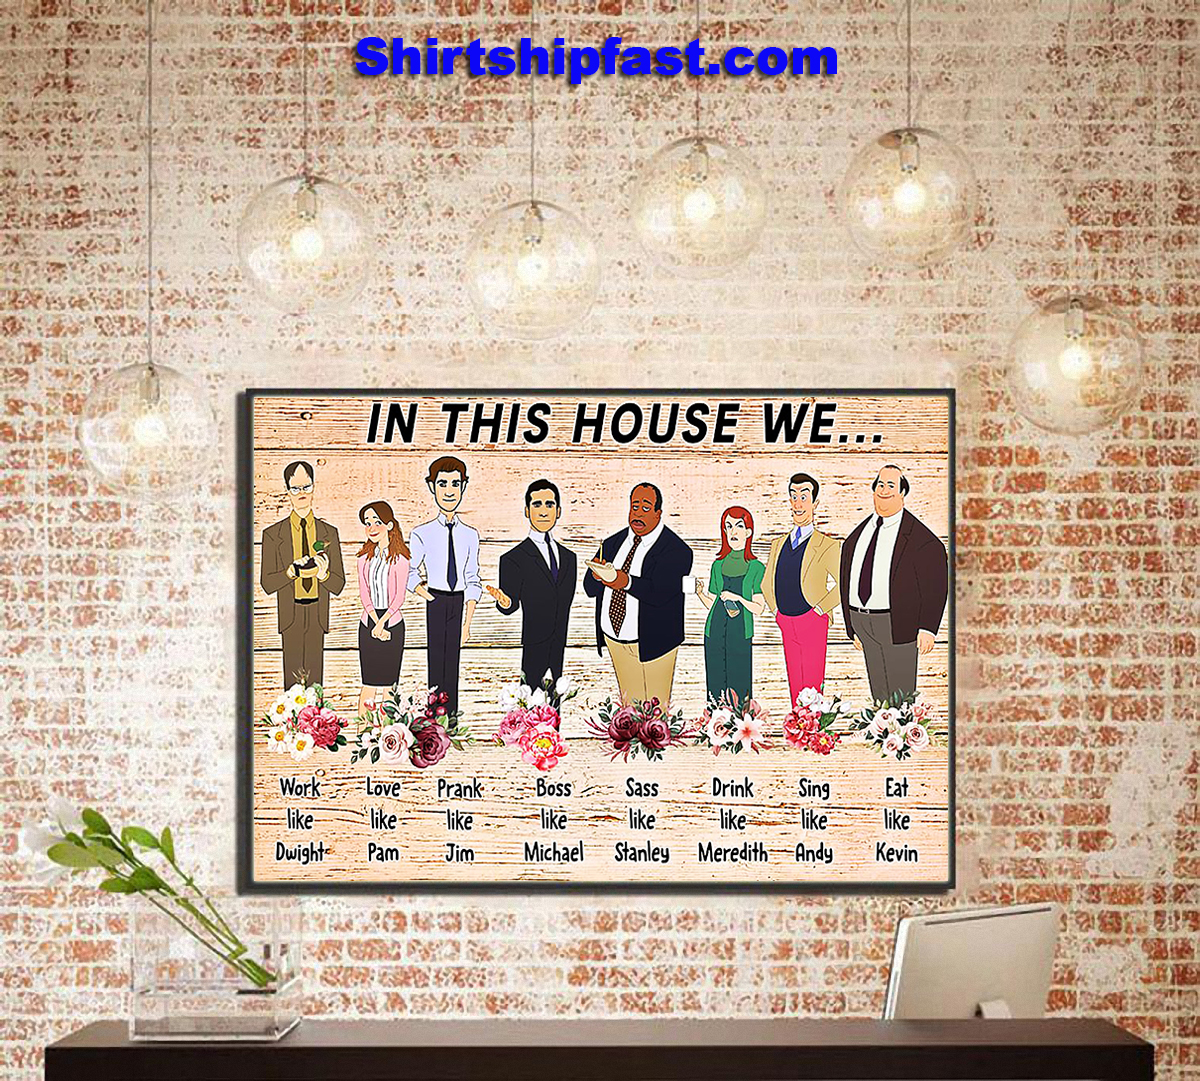 The office in this house we work like Dwigh poster